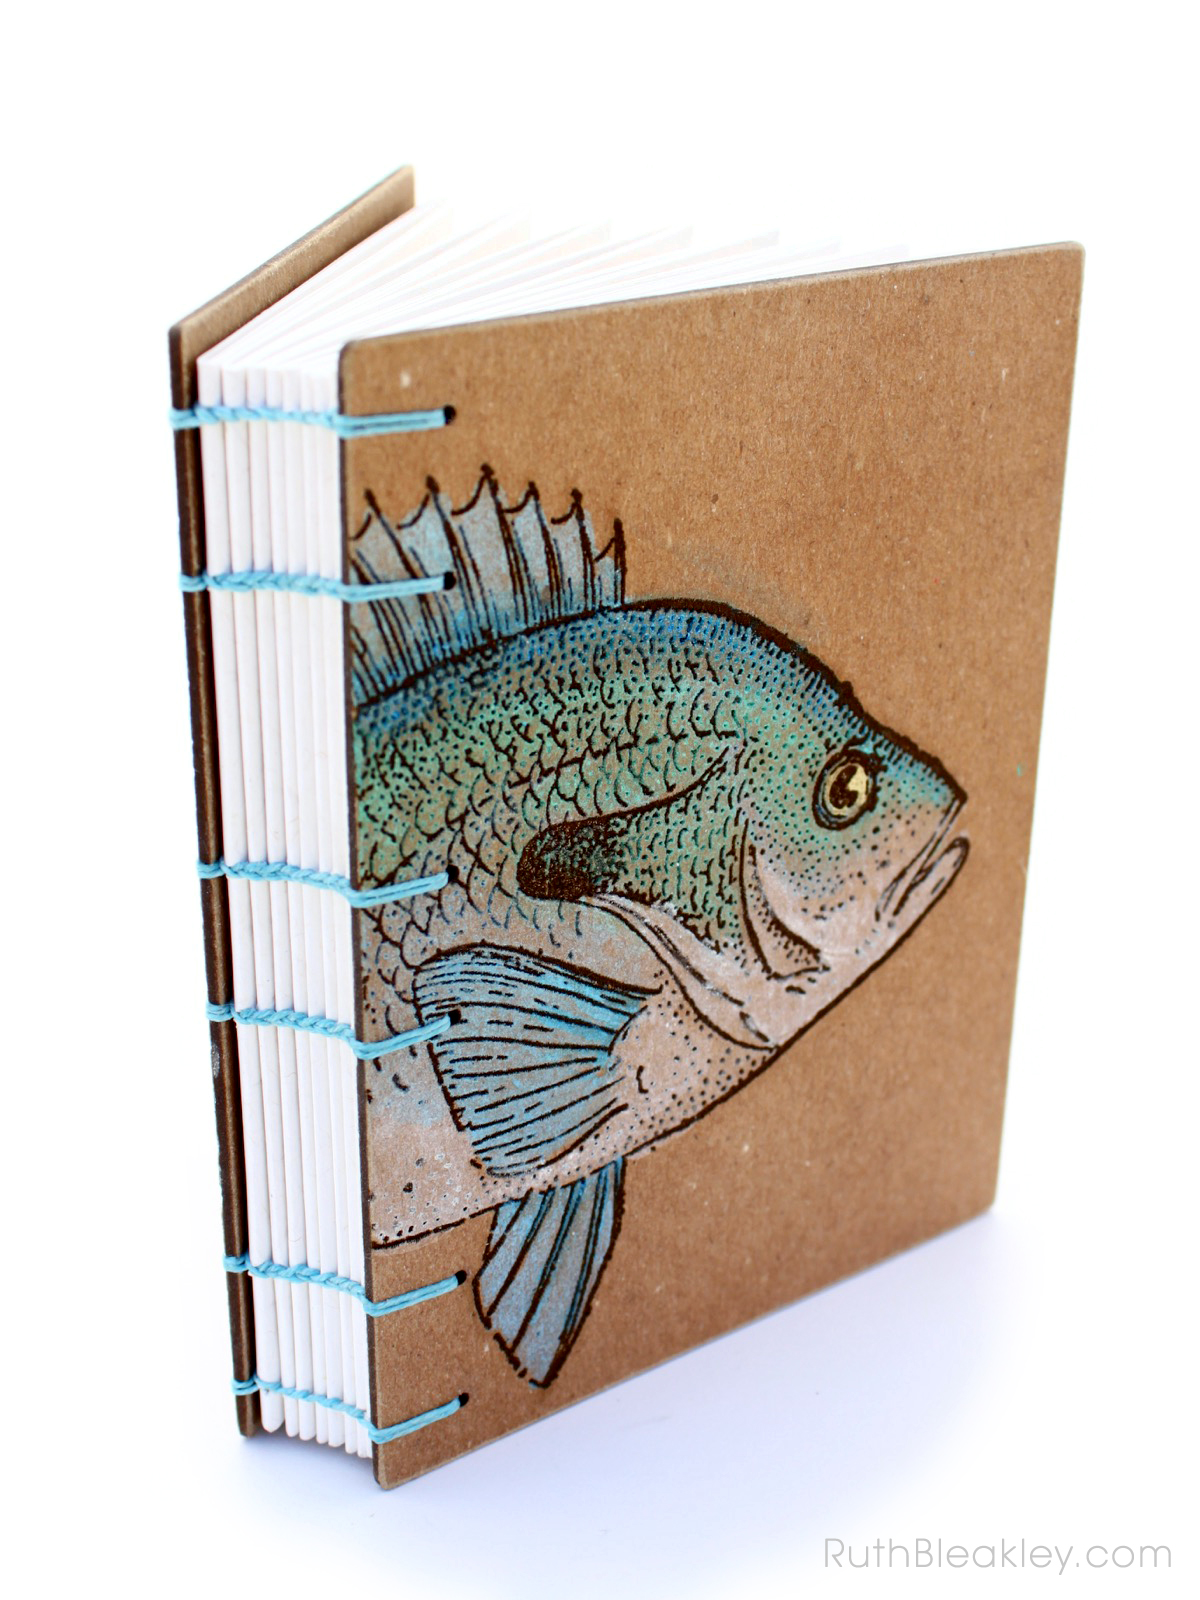 Unique Hand Painted Fish Journal made from Recycled materials